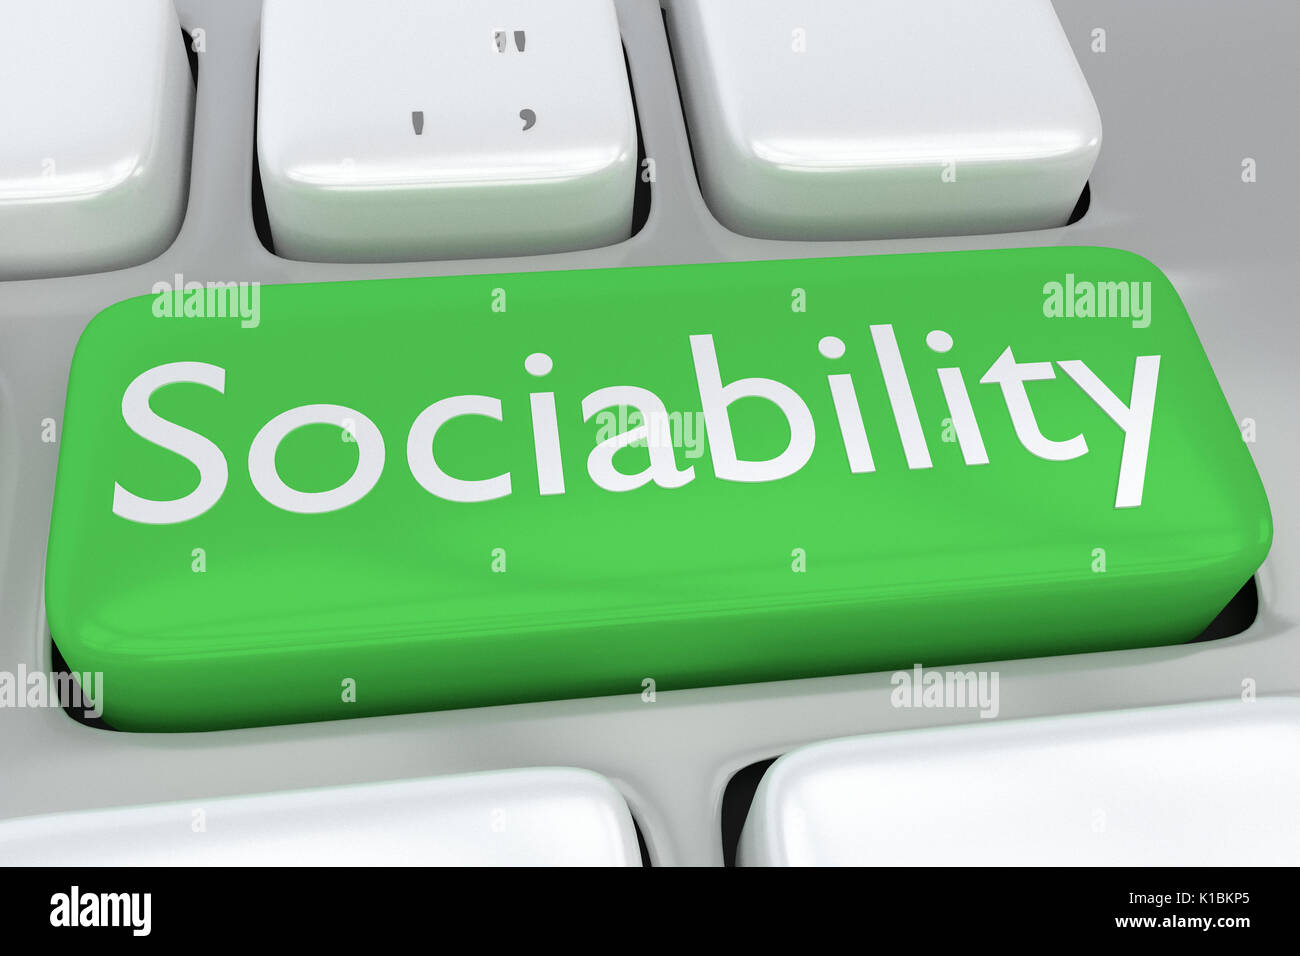 Render illustration of computer keyboard with the print Sociability on a green button - Stock Image